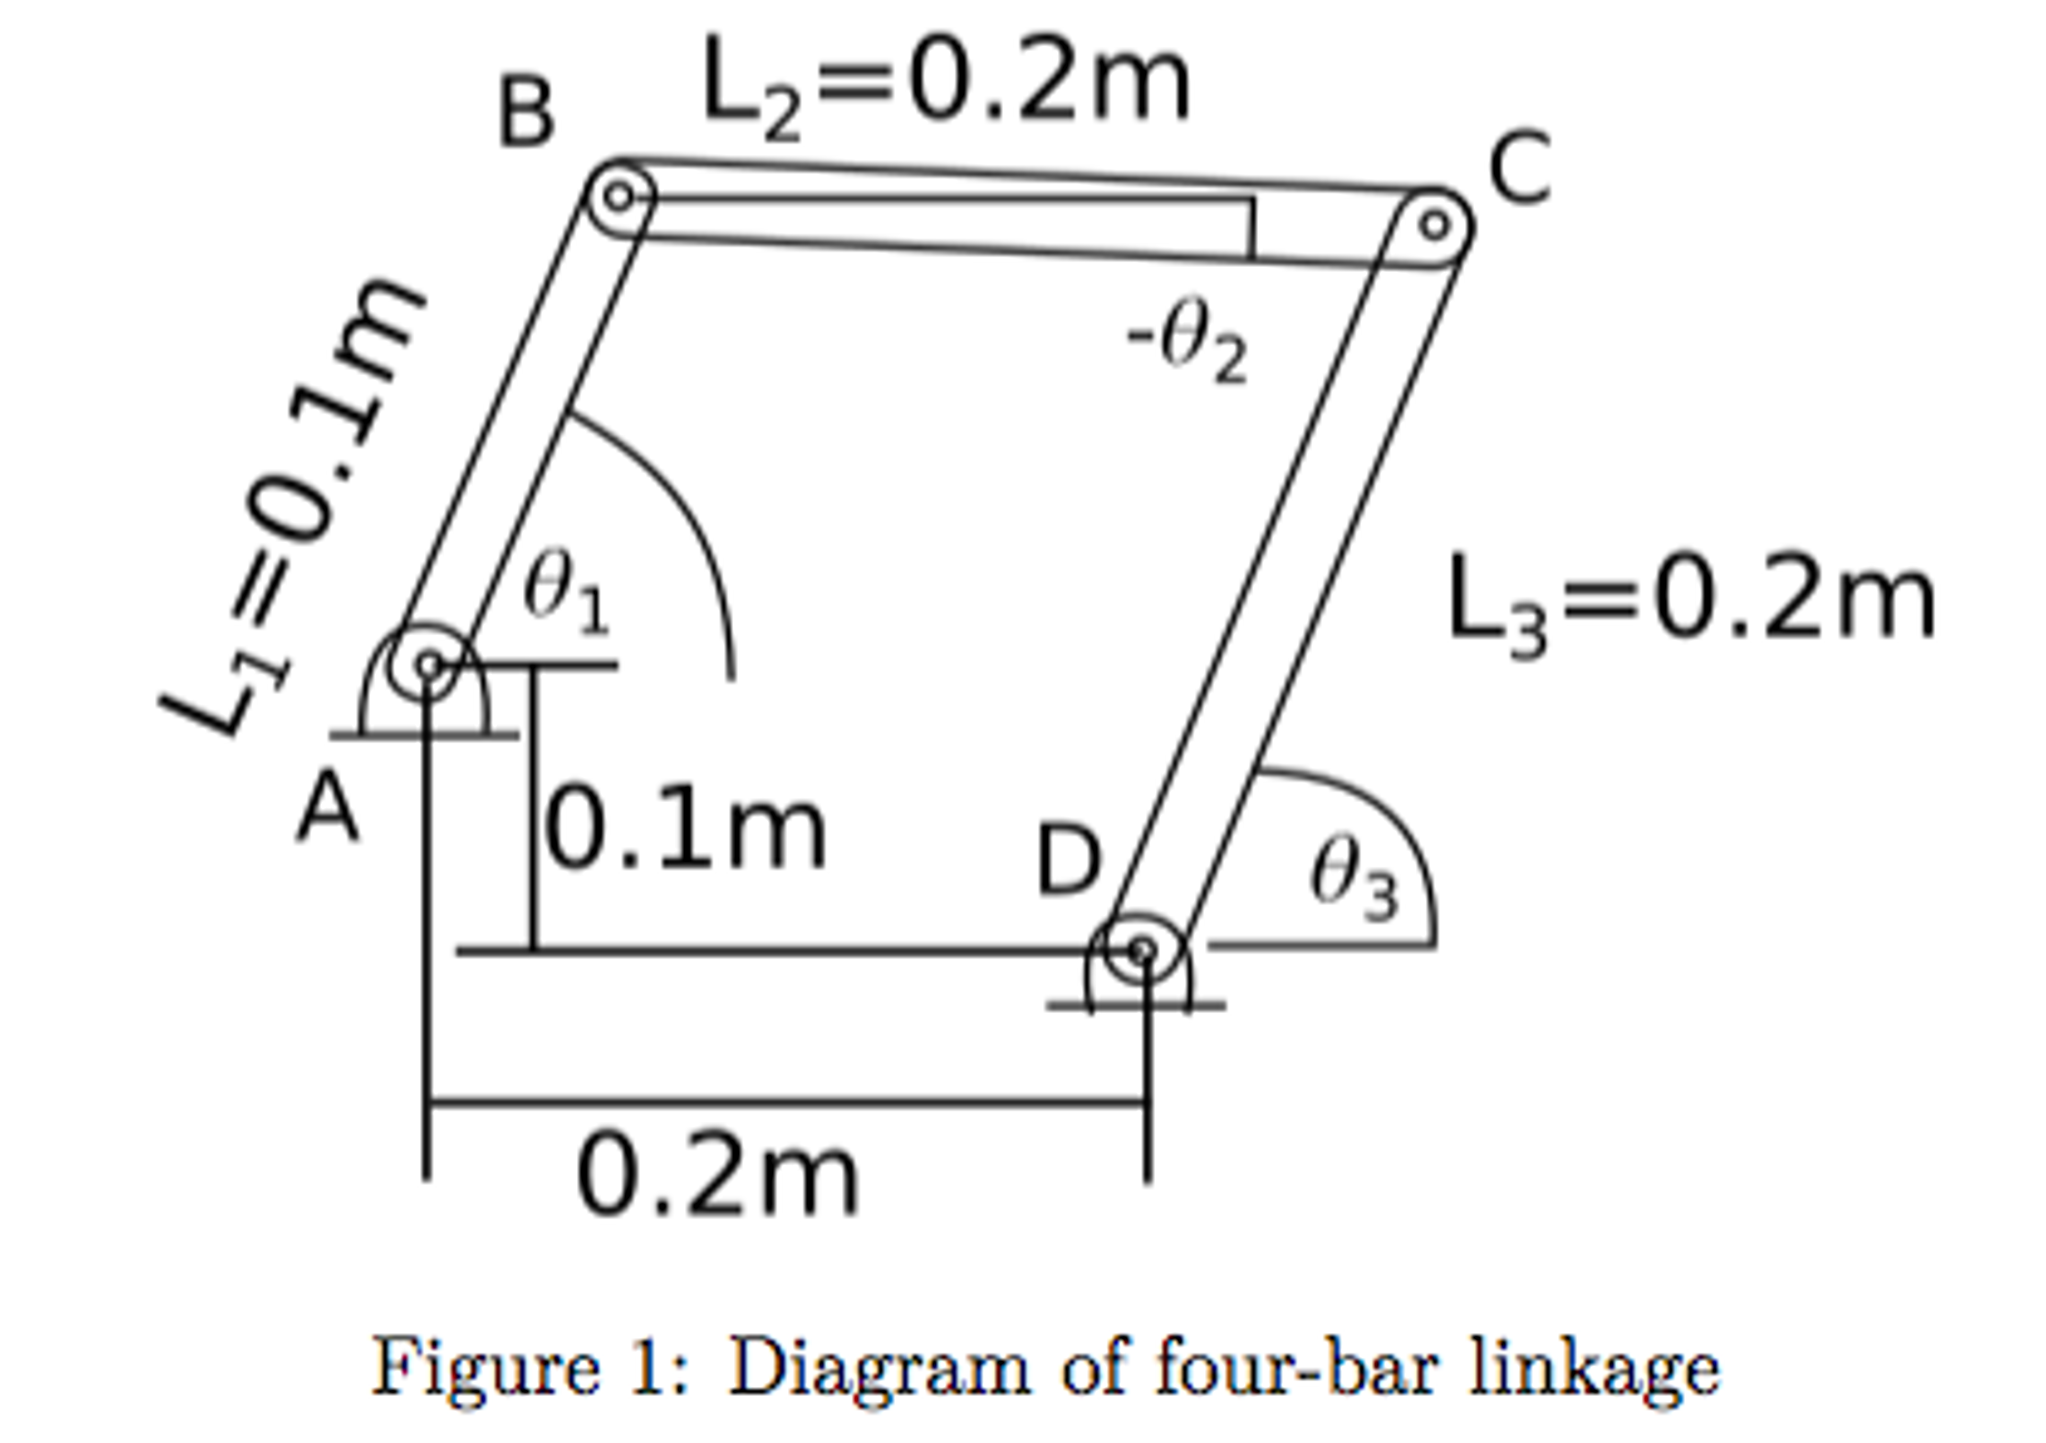 Solved the diagram in figure 1 shows a 4 bar linkage syst b l202m 0 2 l302m a 01m d ccuart Images